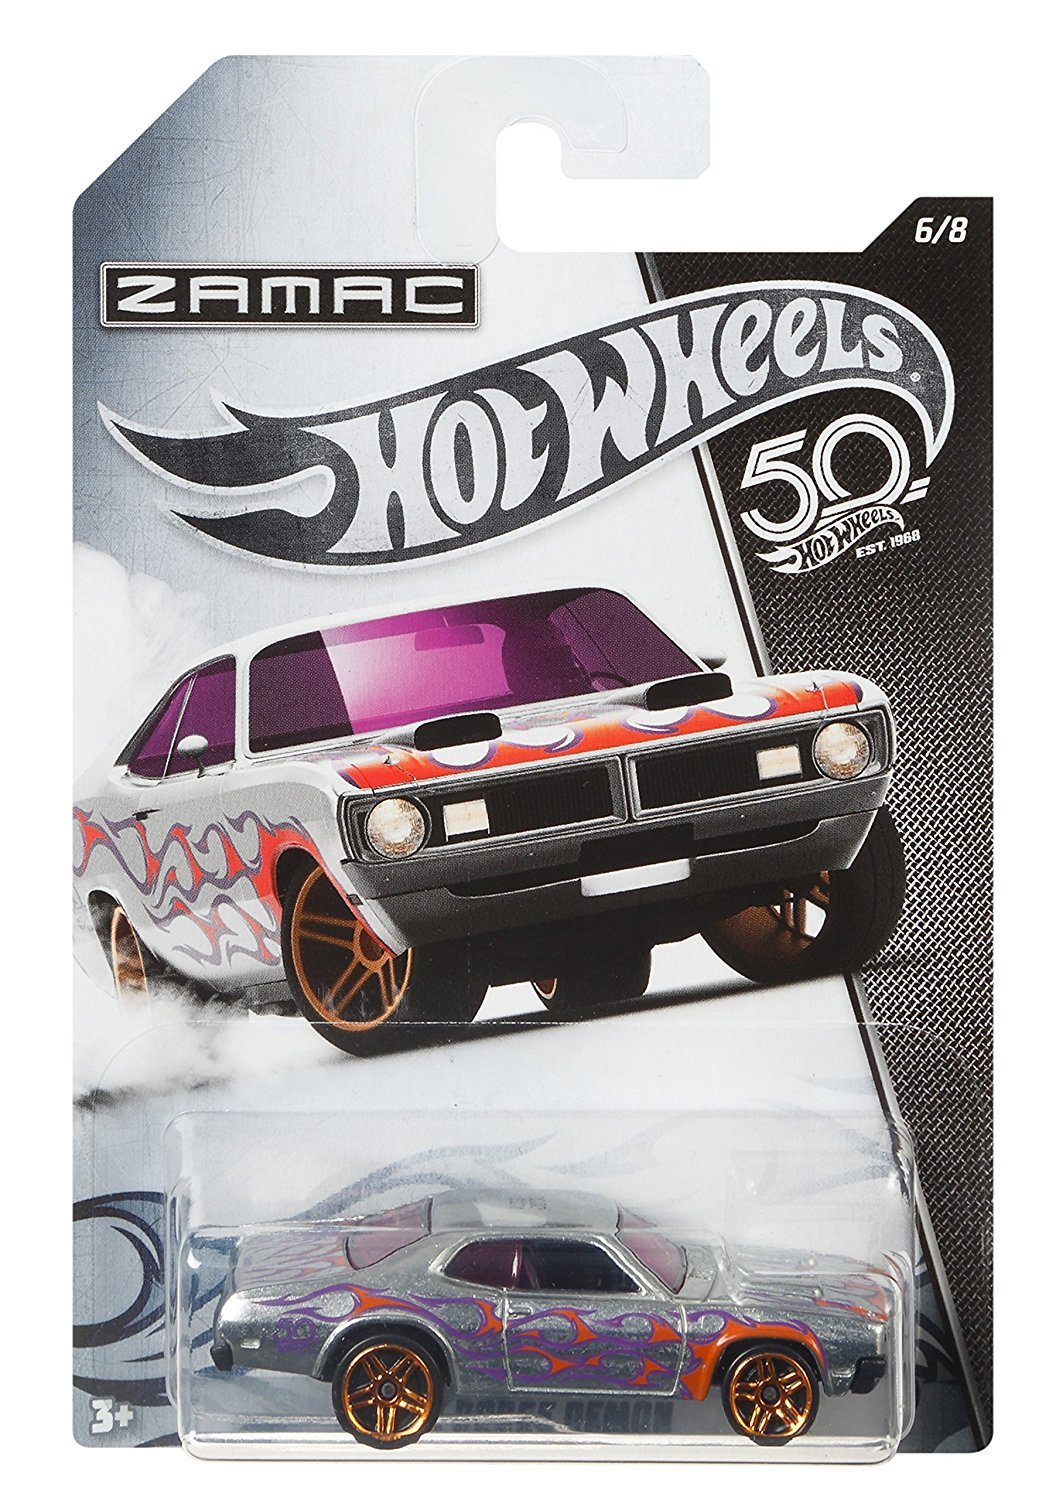 HW Hotwheels 50th Anniversary ZAMAC FRN29 - 1971 Dodge Demon 6/8: Amazon.es: Juguetes y juegos